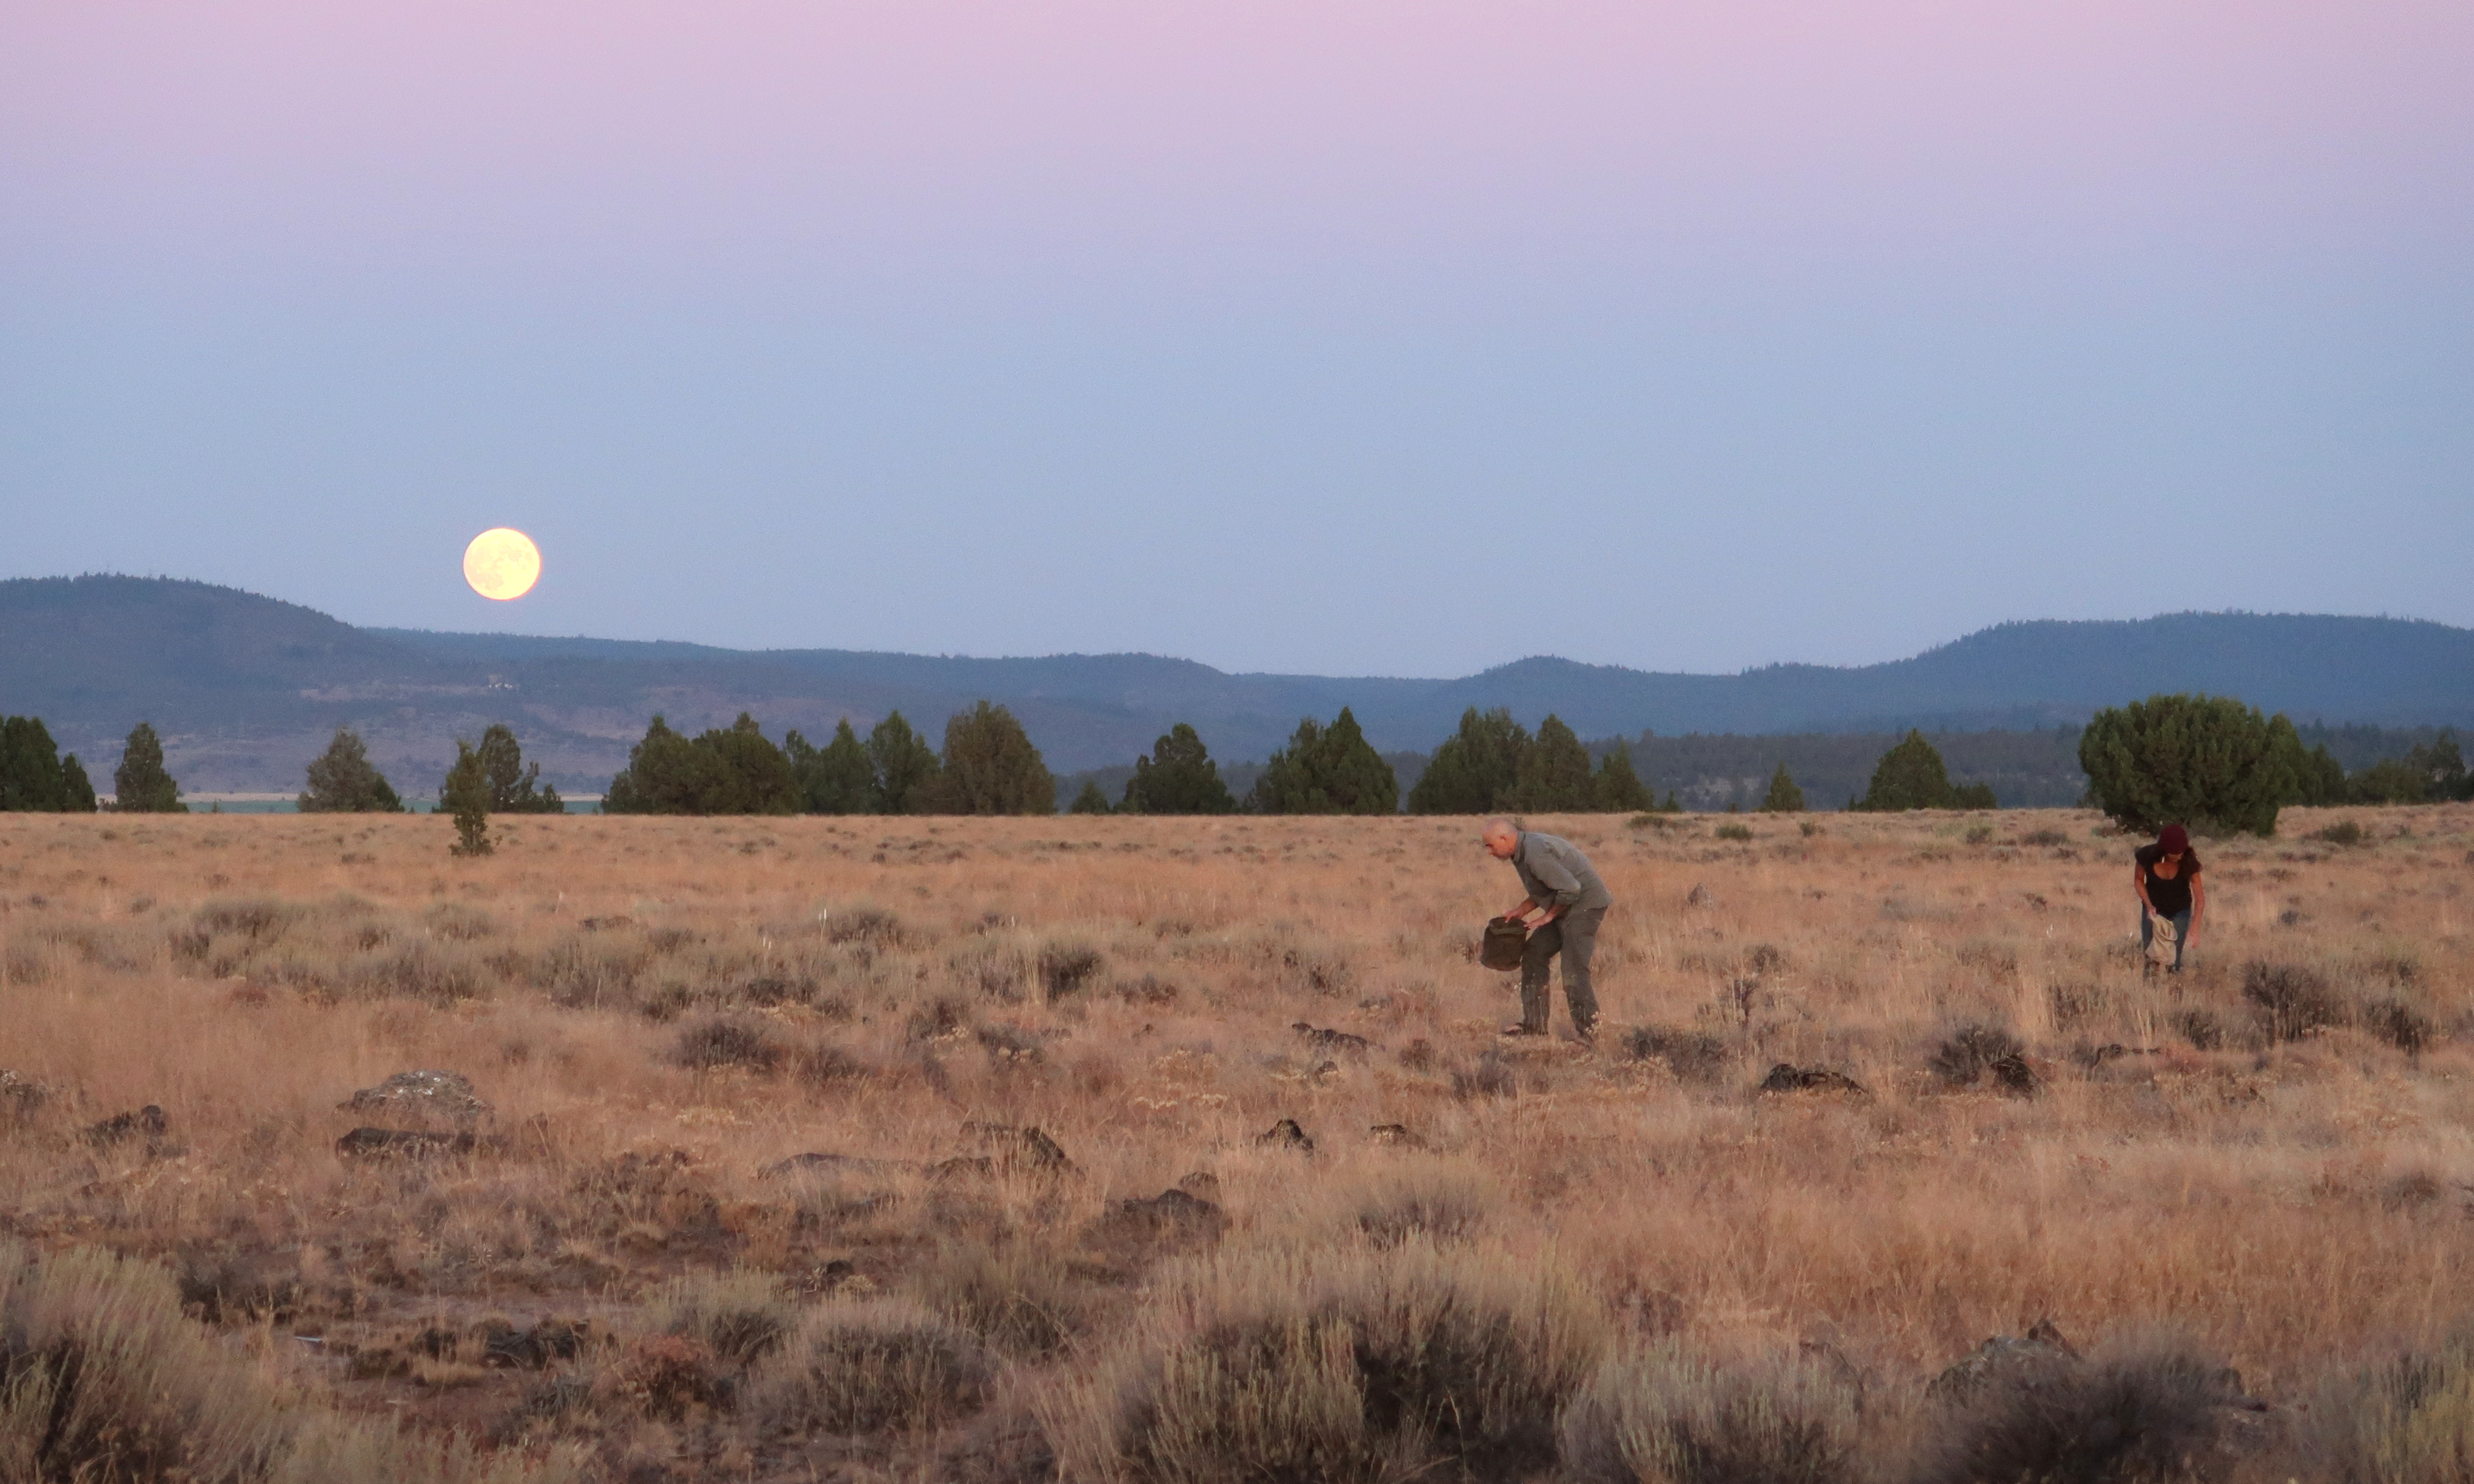 Wildtenders collecting Yampah seed by the light of the full moon, Sept. 2019 (Photo by the author)